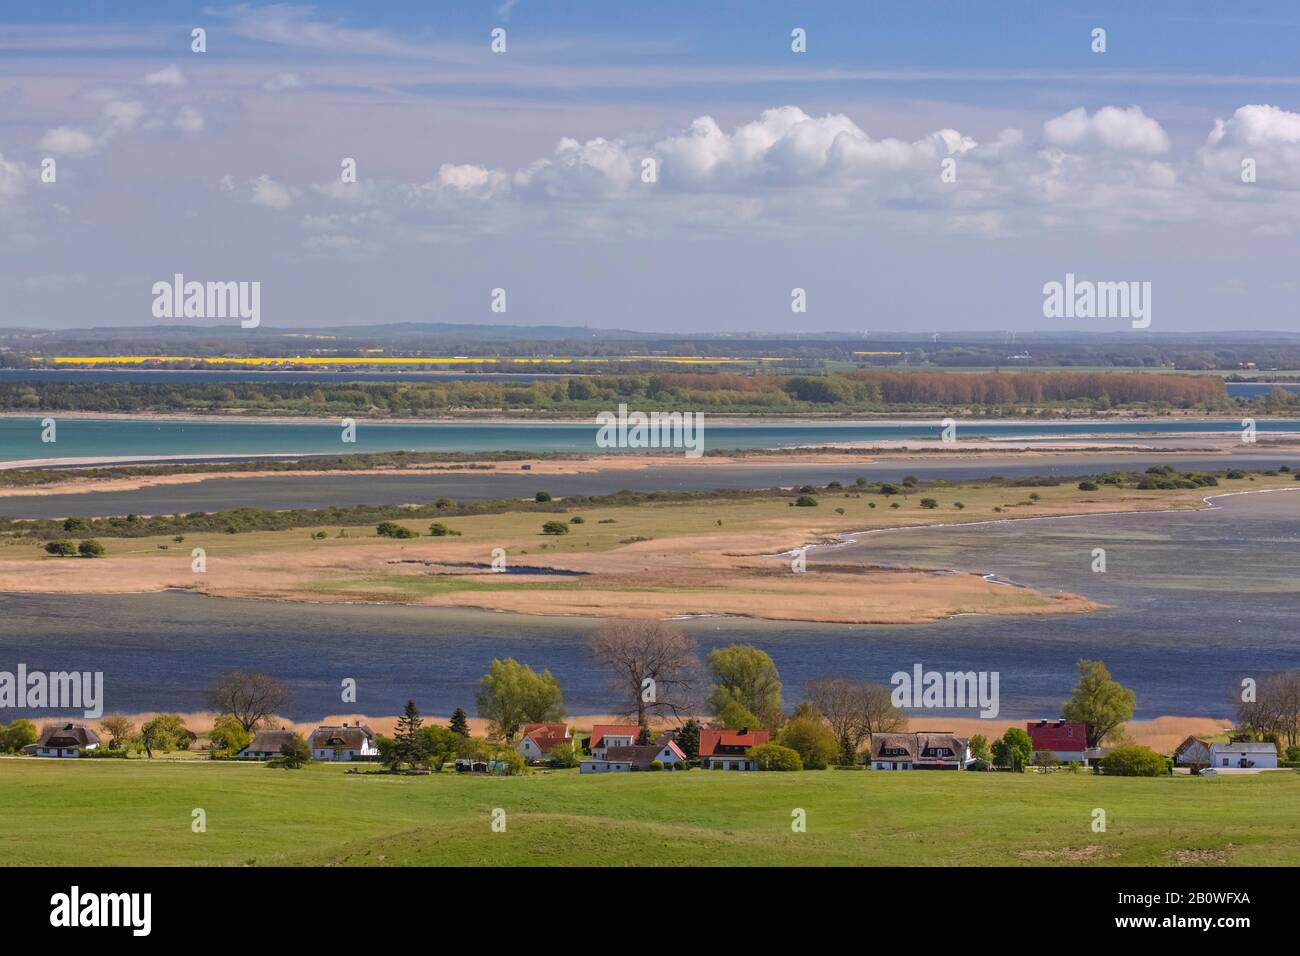 Aerial view from Dornbusch Lighthouse over Hiddensee Island in the Baltic Sea, Mecklenburg-Western Pomerania / Mecklenburg-Vorpommern, Germany Stock Photo